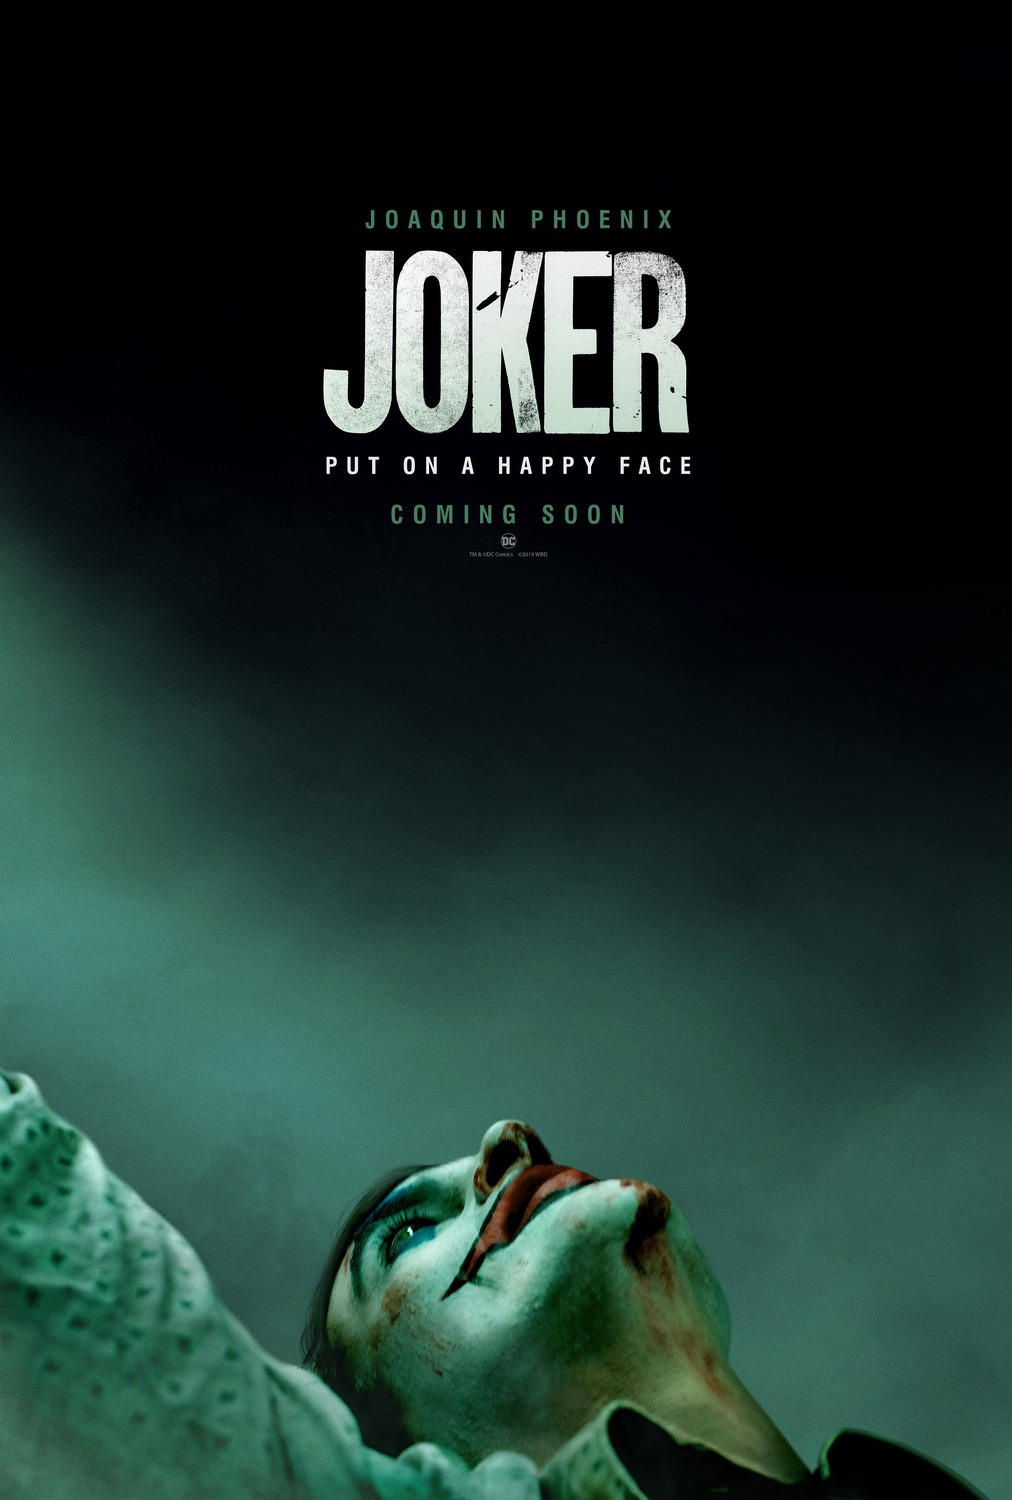 Joker first look review Venice Film Festival 2019: Joaquin Phoenix puts on a happy face